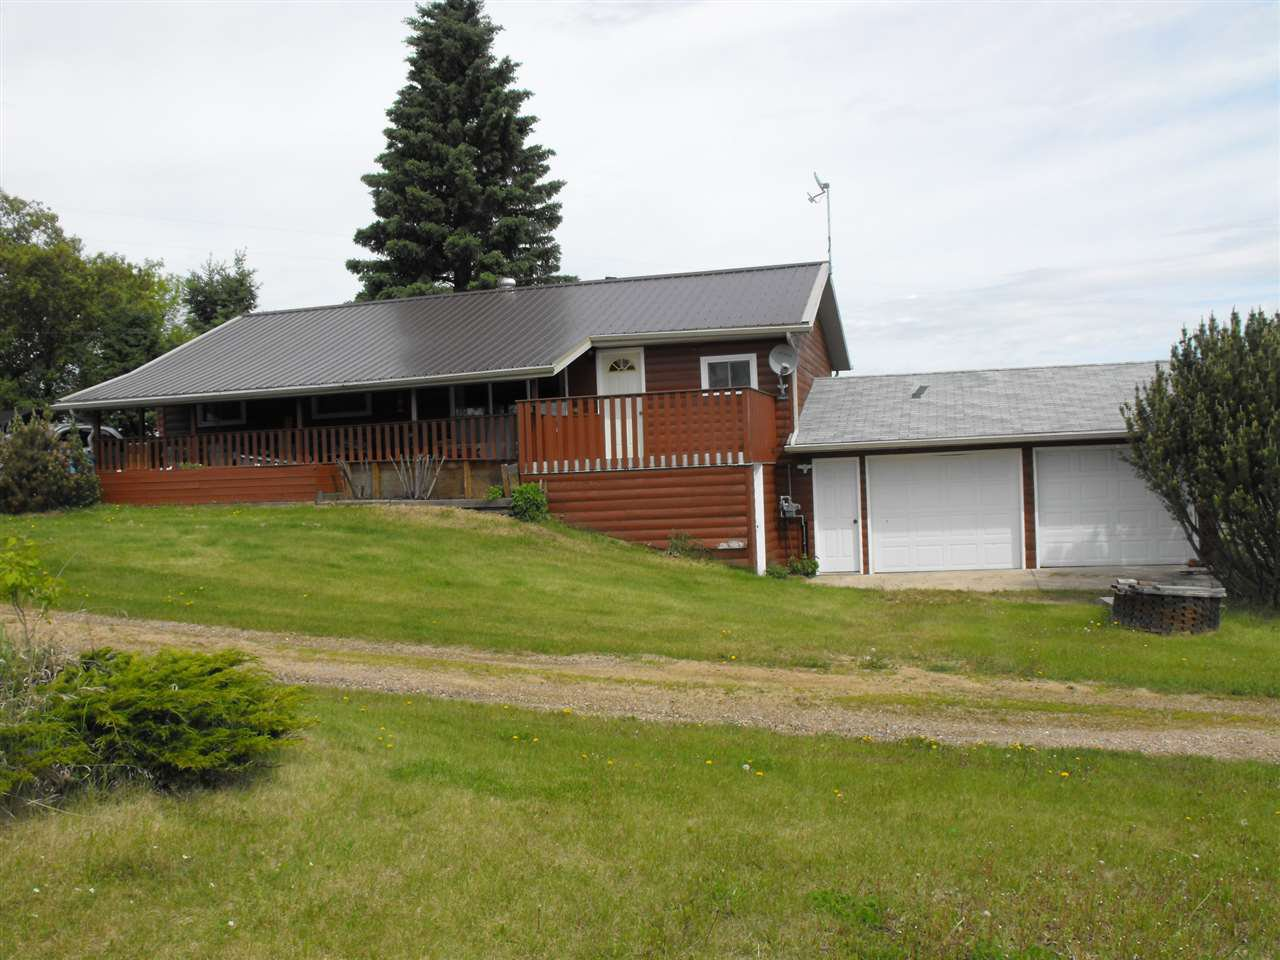 Main Photo: 56428 Rge Rd 75: Rural St. Paul County House for sale : MLS®# E4085333